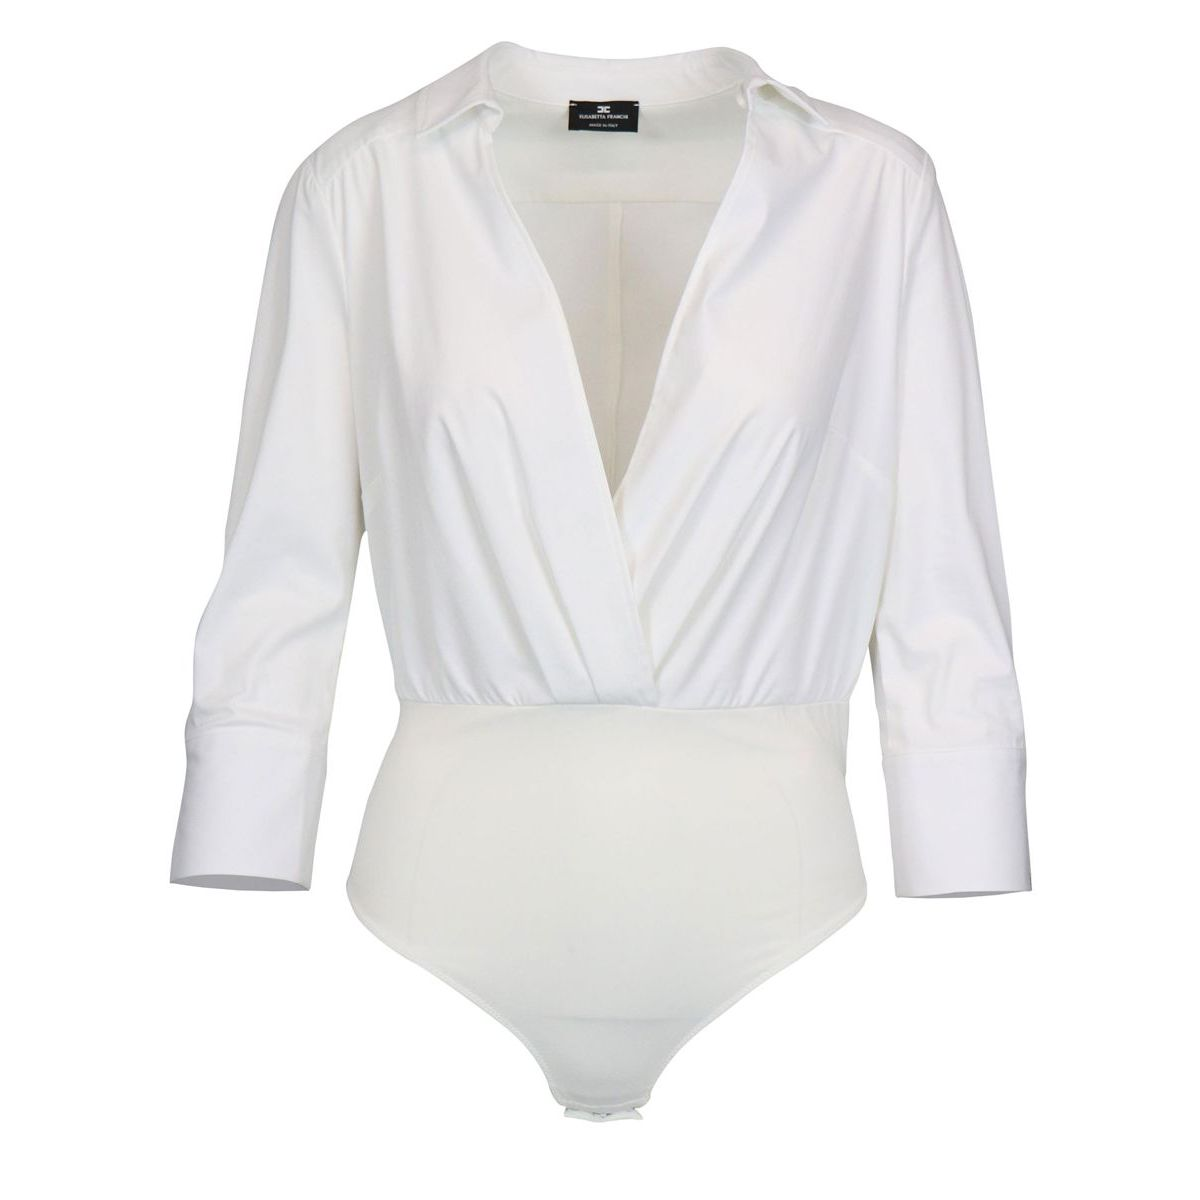 V-neck body shirt and three-quarter sleeve Optical white Elisabetta Franchi